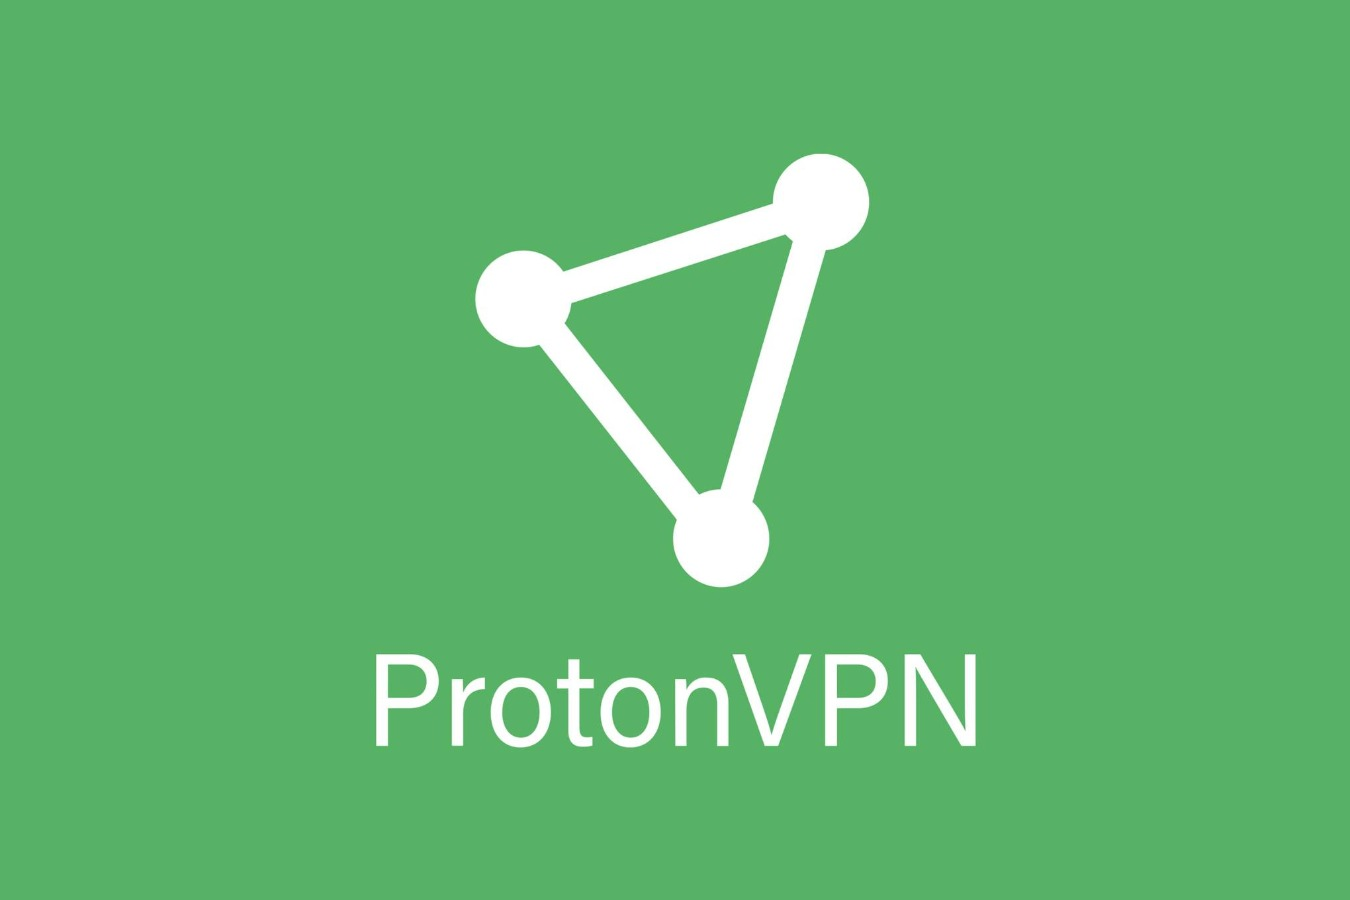 How to create unlimited Proton VPN free of charge!